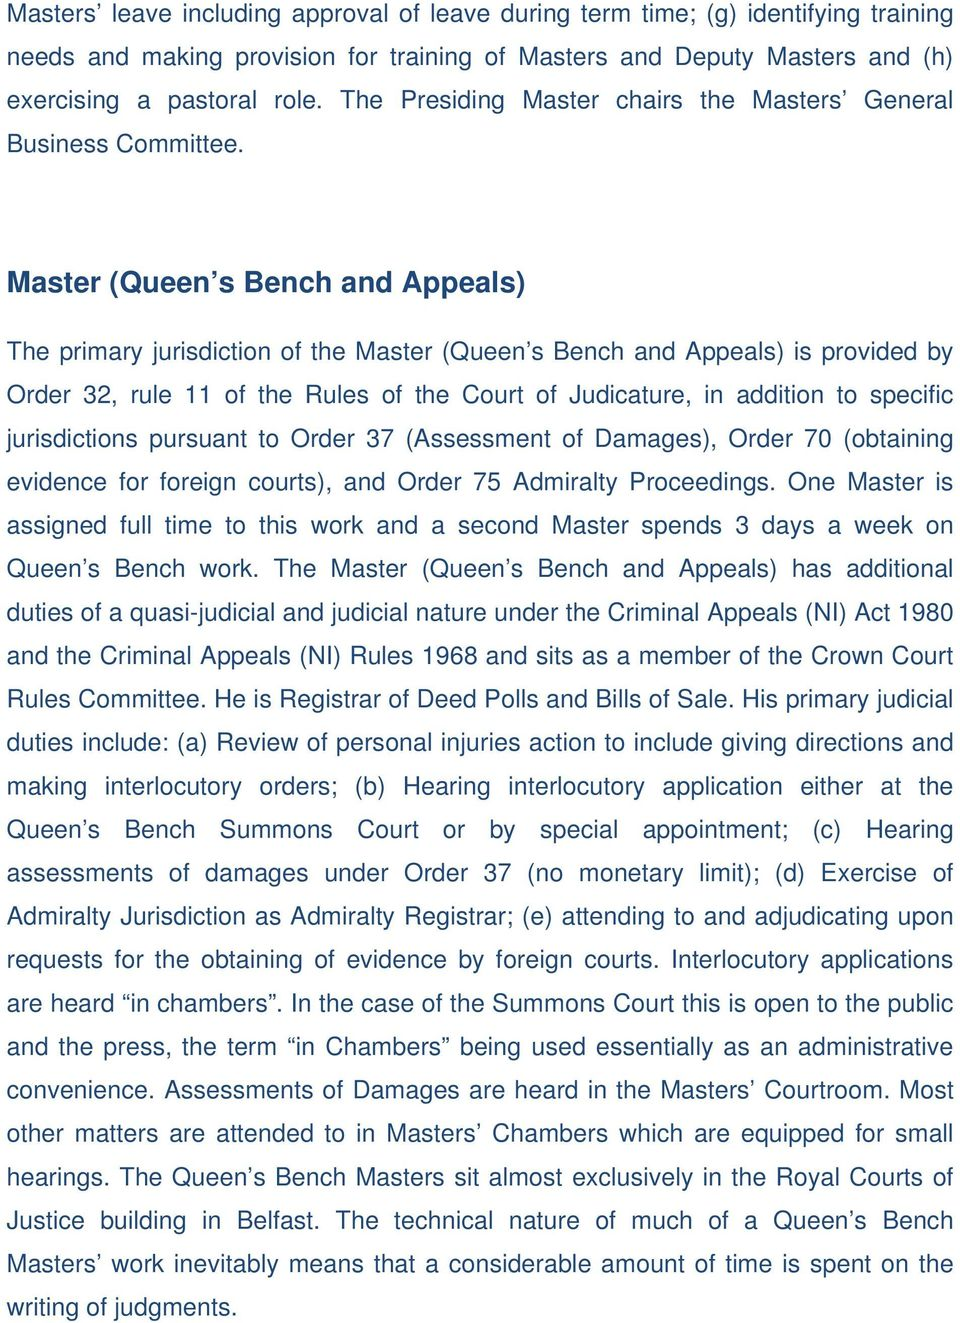 Master (Queen s Bench and Appeals) The primary jurisdiction of the Master (Queen s Bench and Appeals) is provided by Order 32, rule 11 of the Rules of the Court of Judicature, in addition to specific